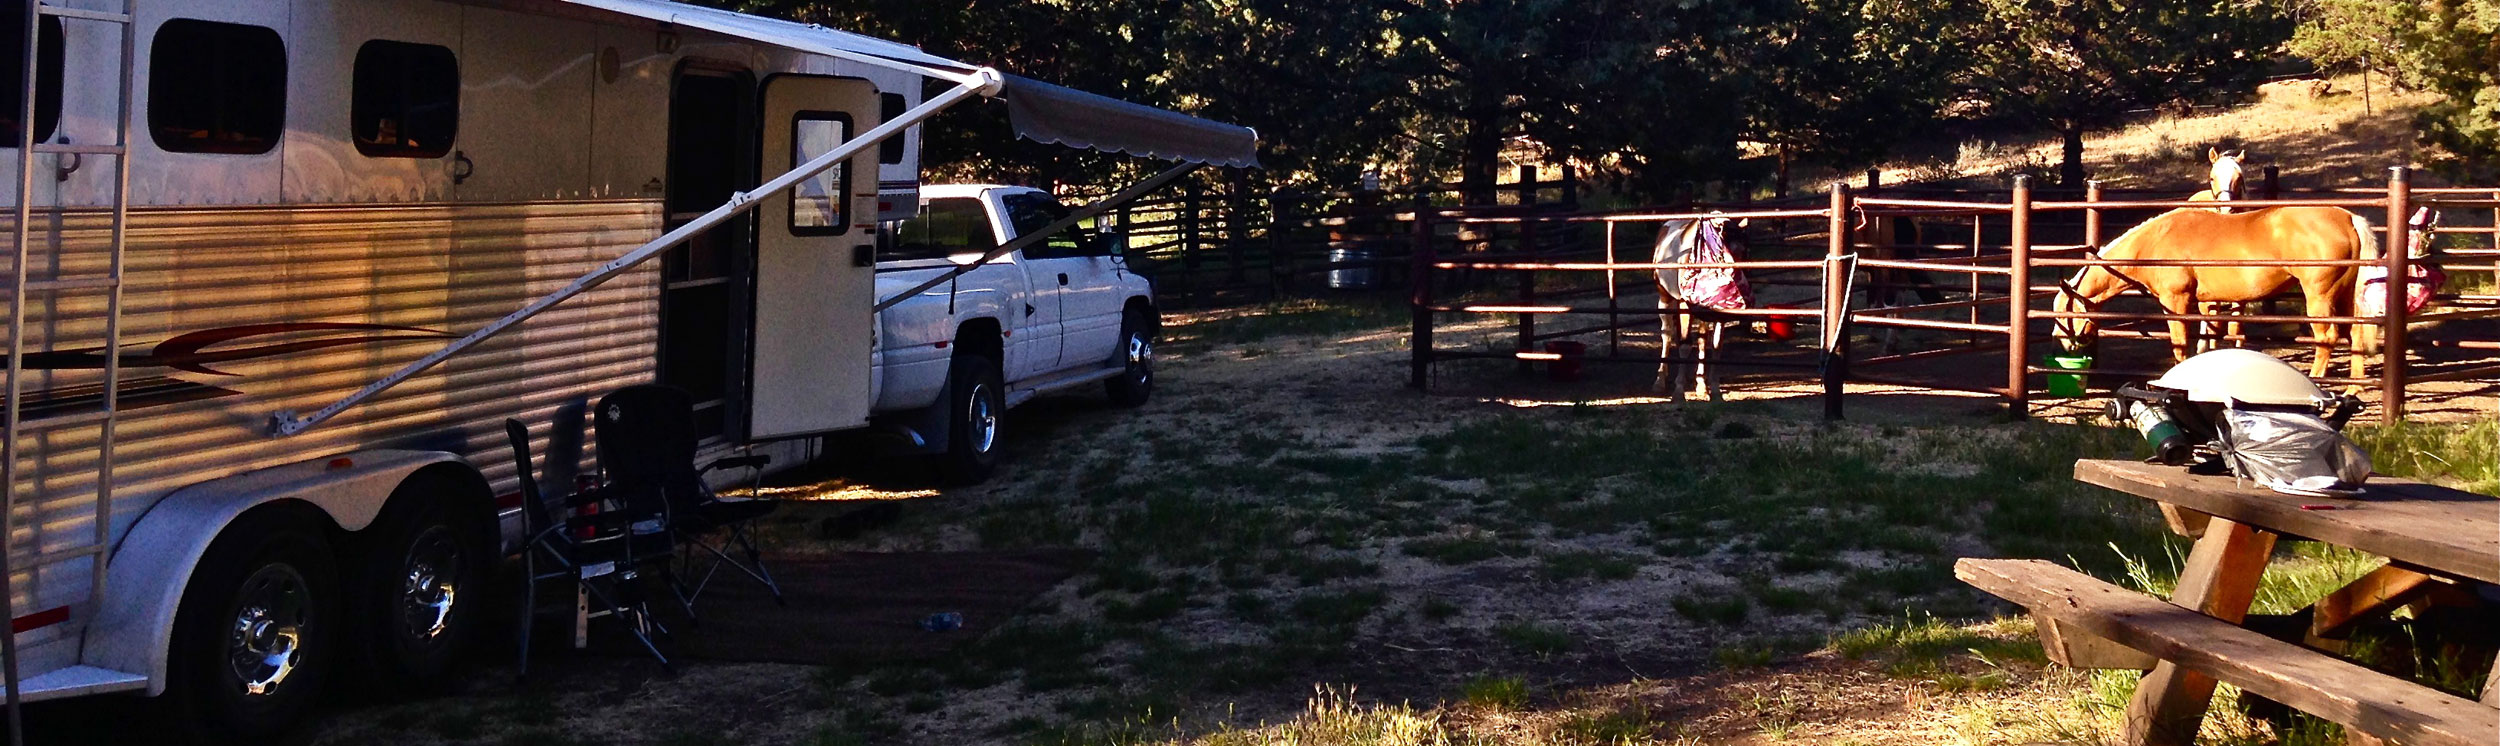 cyrus horse camp - to blm trails